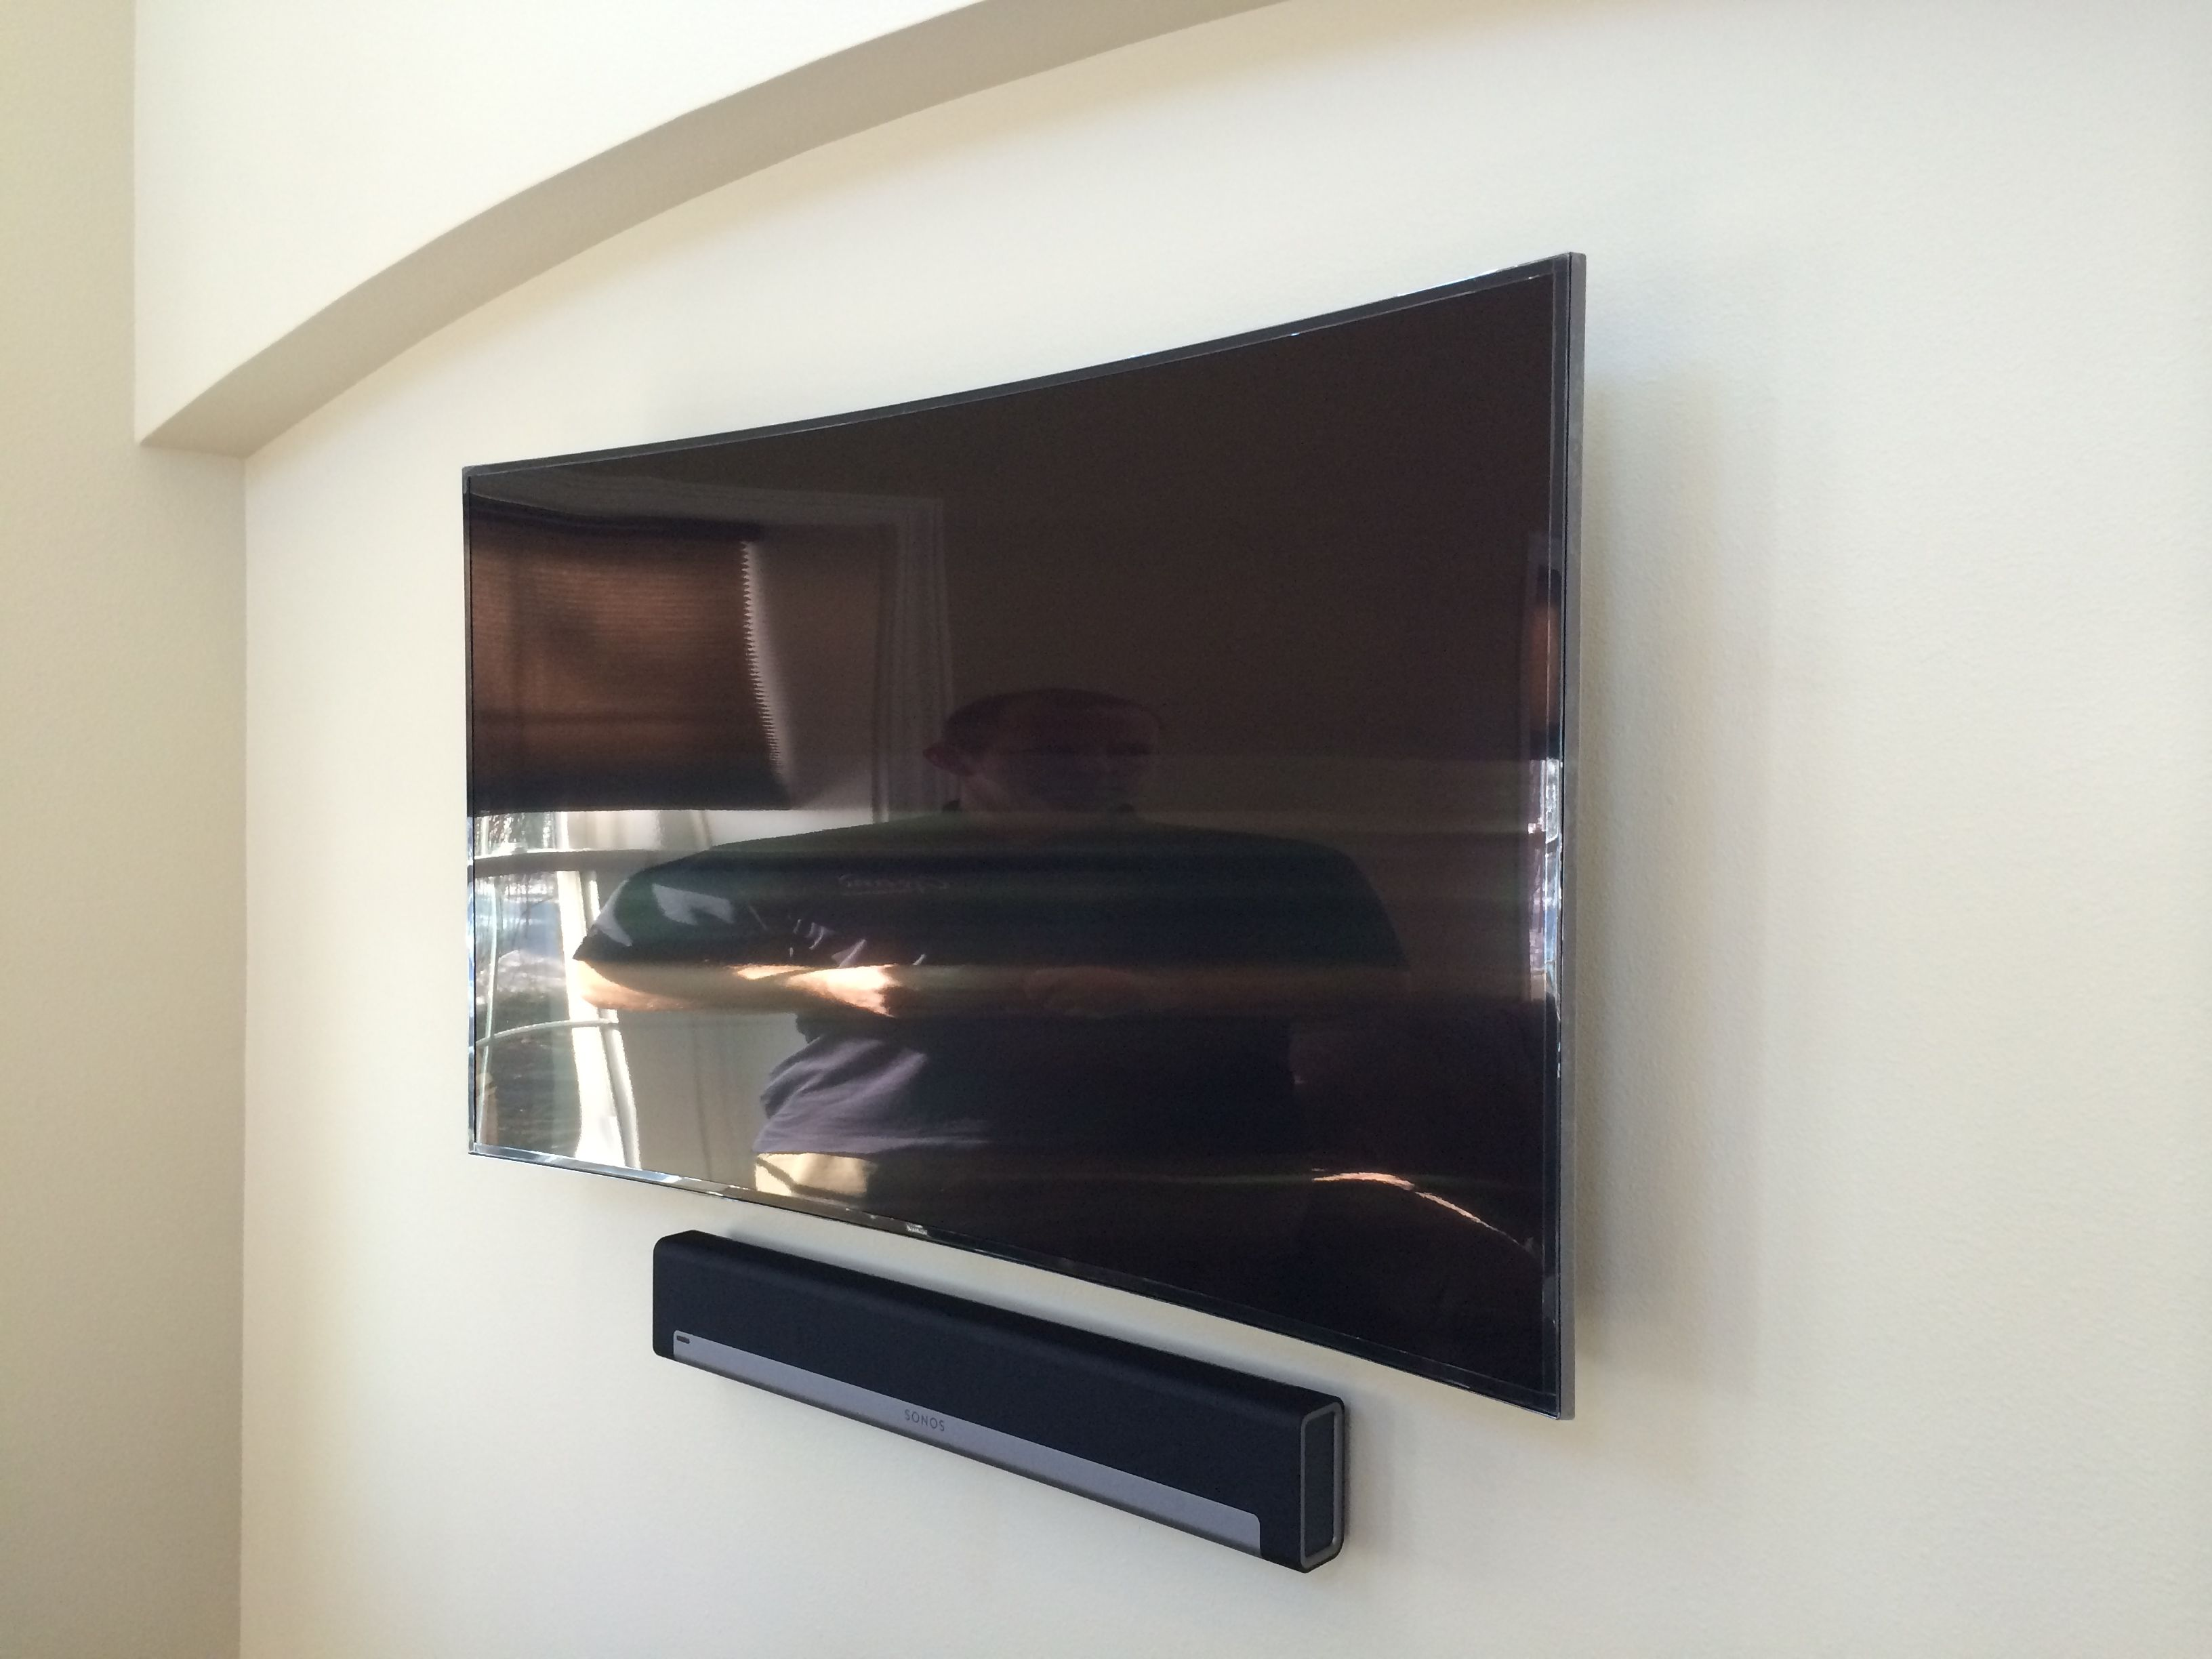 samsung curved tv in living room. curved flat panel tv mounted on a wall with sonos playbar home theater soundbar system samsung tv in living room c